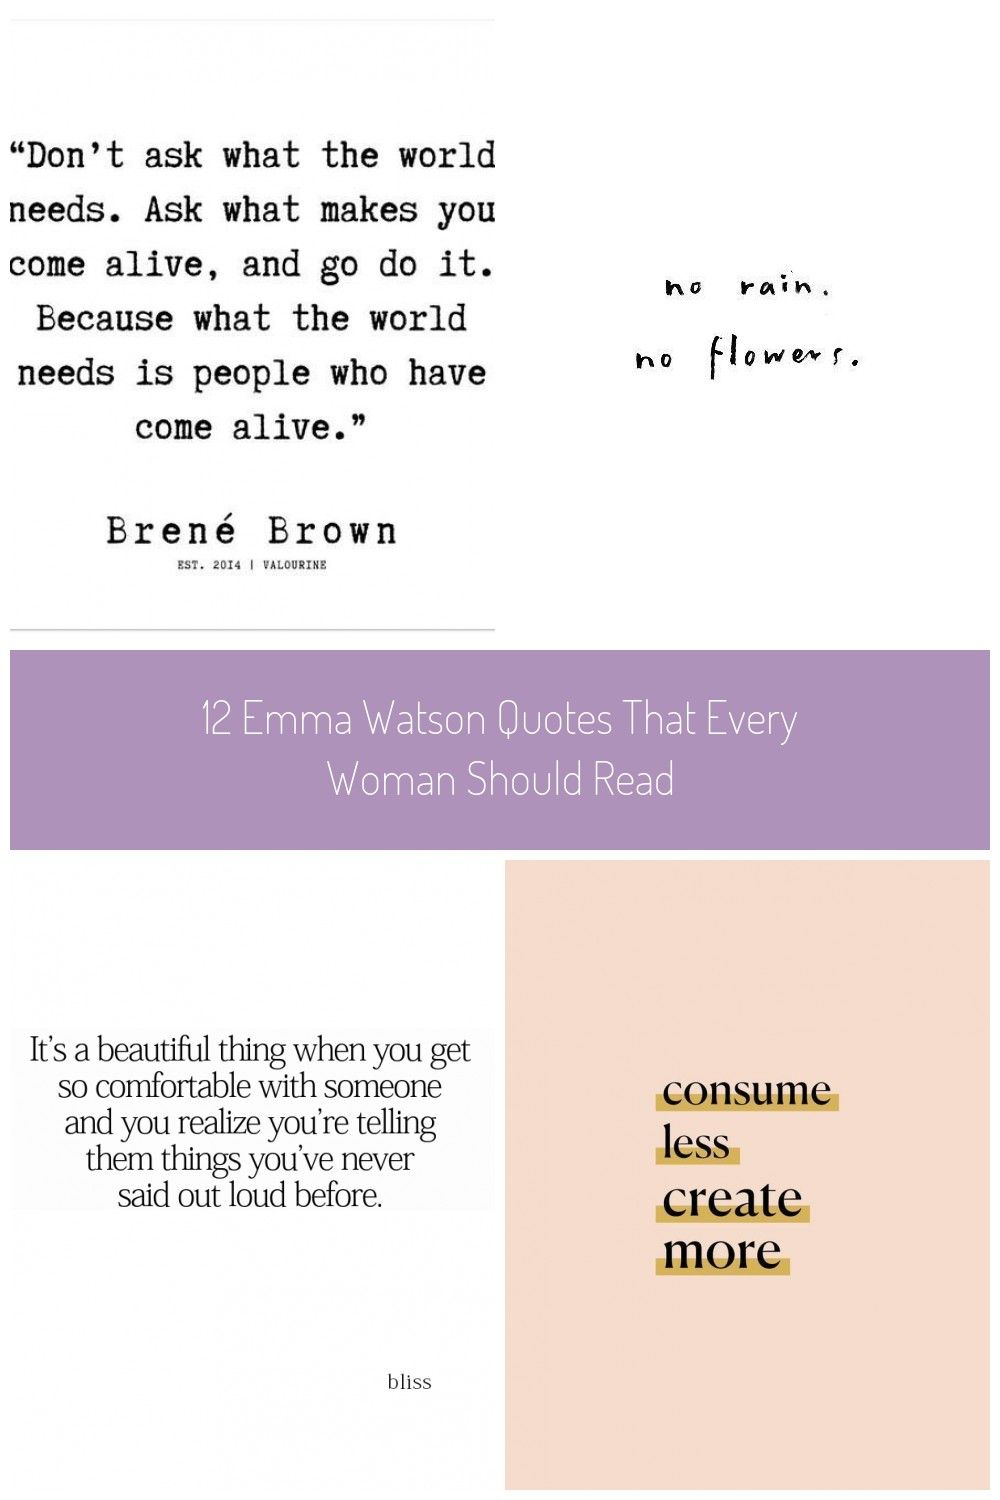 10  | Bubble-free stickers  |  Brené Brown Quotes | 191213 | to live by 10  | Bubble-free stickers